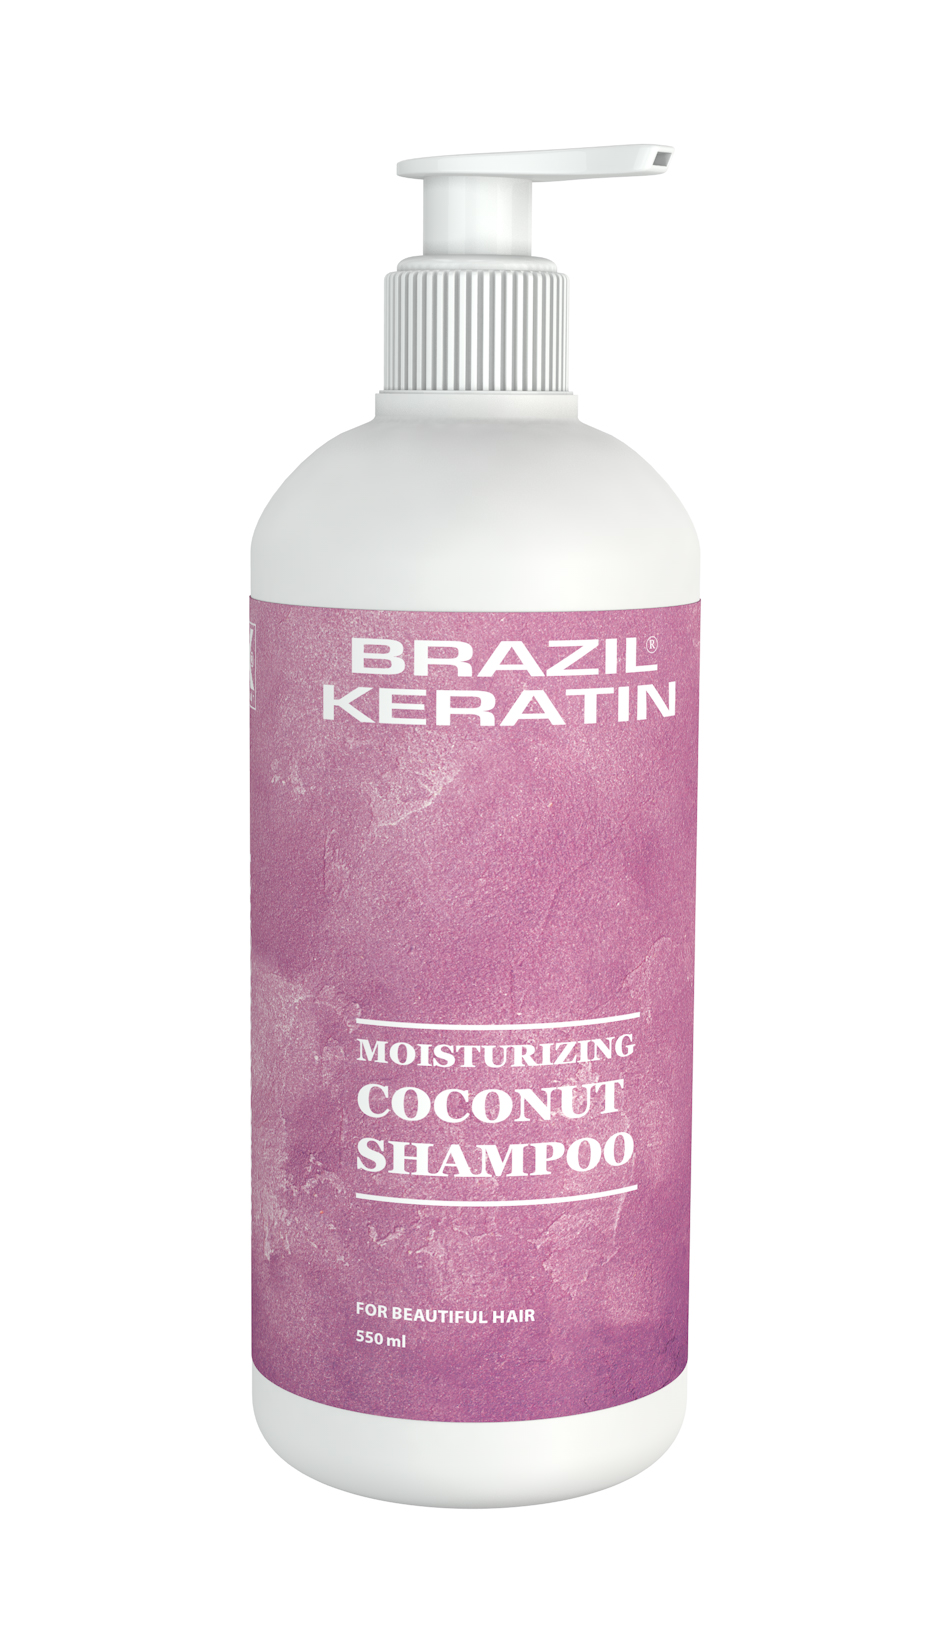 Shampoo Coconut 550 ml